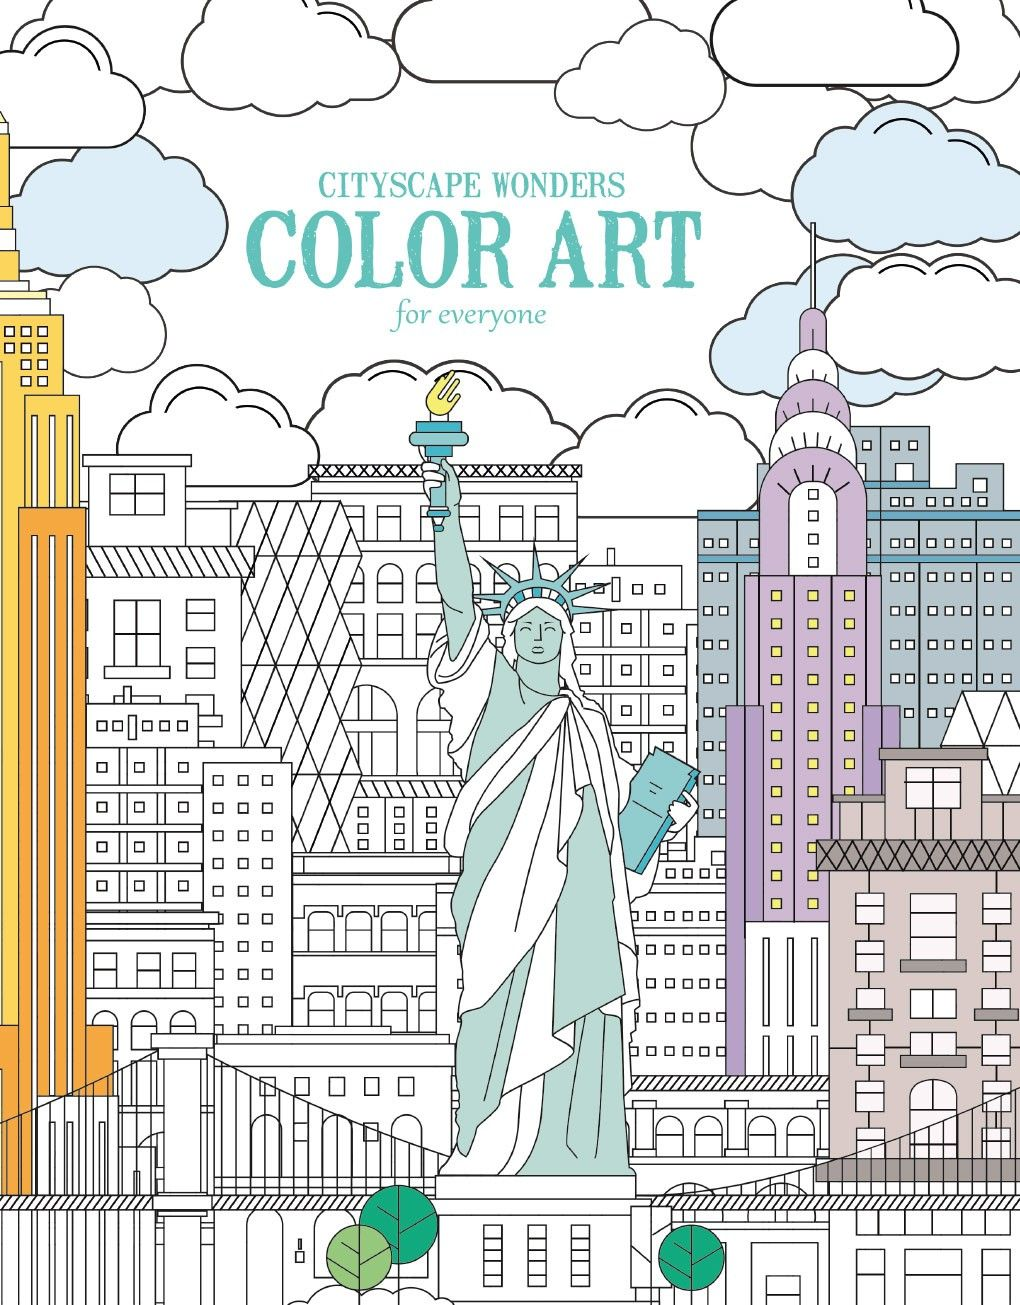 Cityscape Wonders Color Art For Everyone